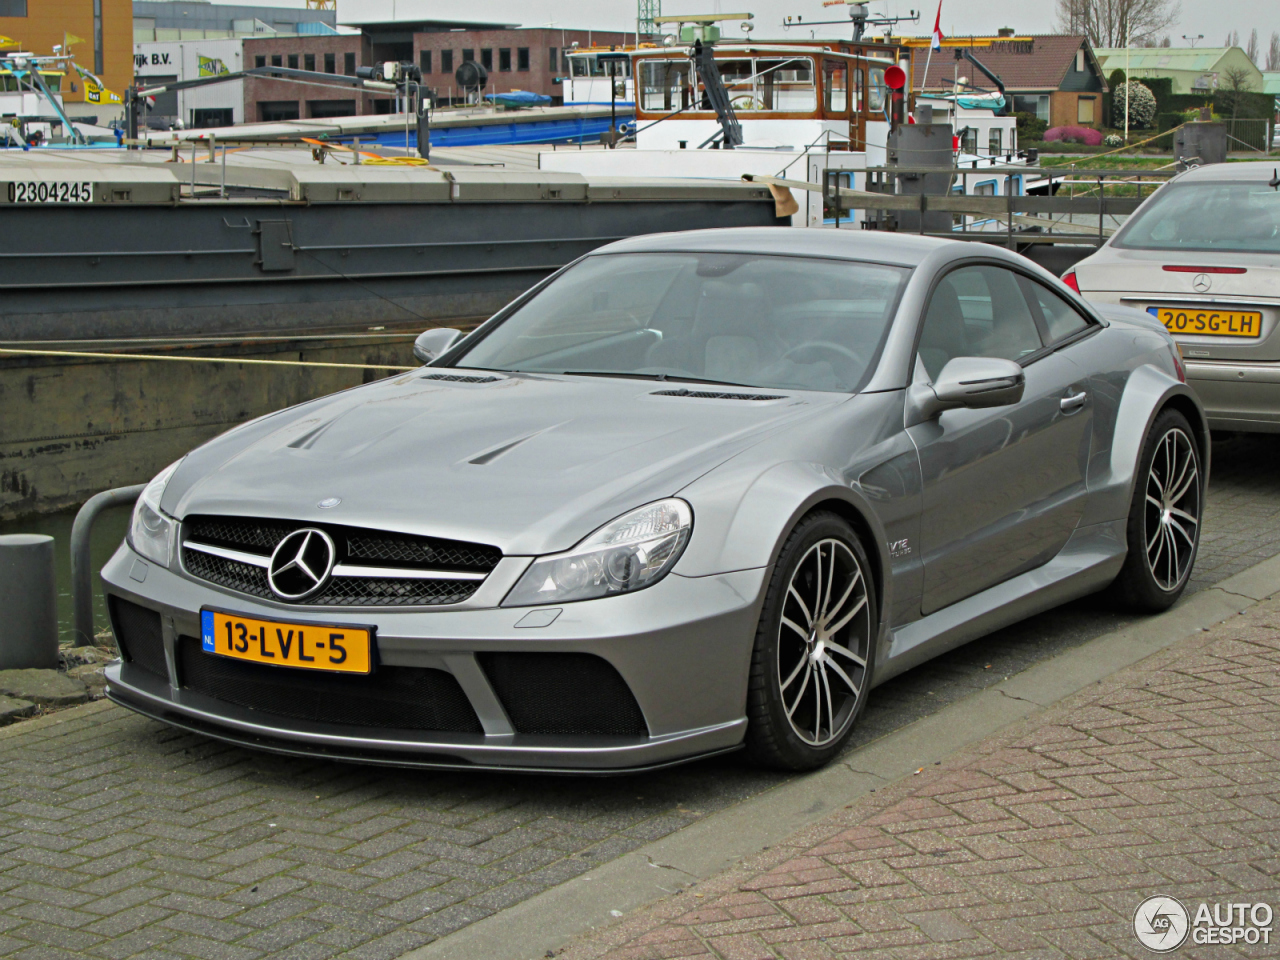 Mercedes benz sl 65 amg black series 18 december 2015 for Mercedes benz amg black